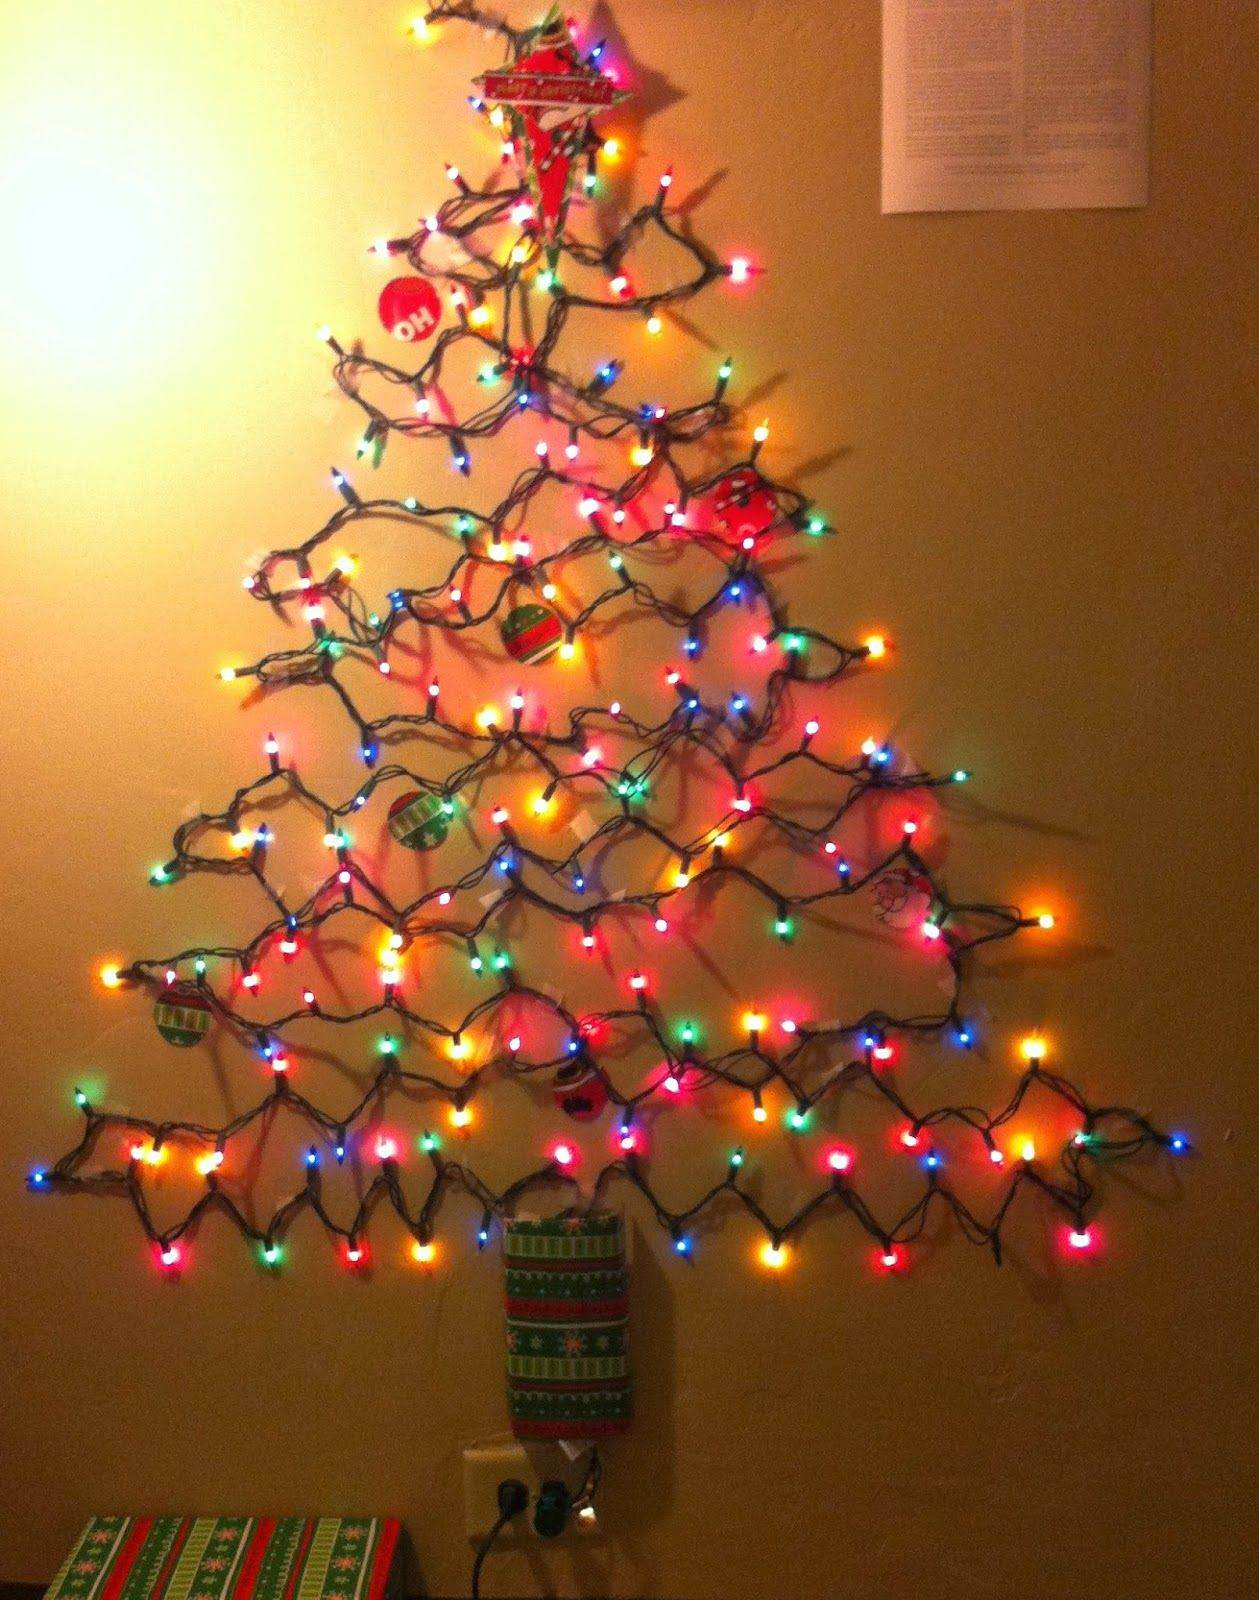 Photo Christmas Tree Made Of Lights On Wall Images